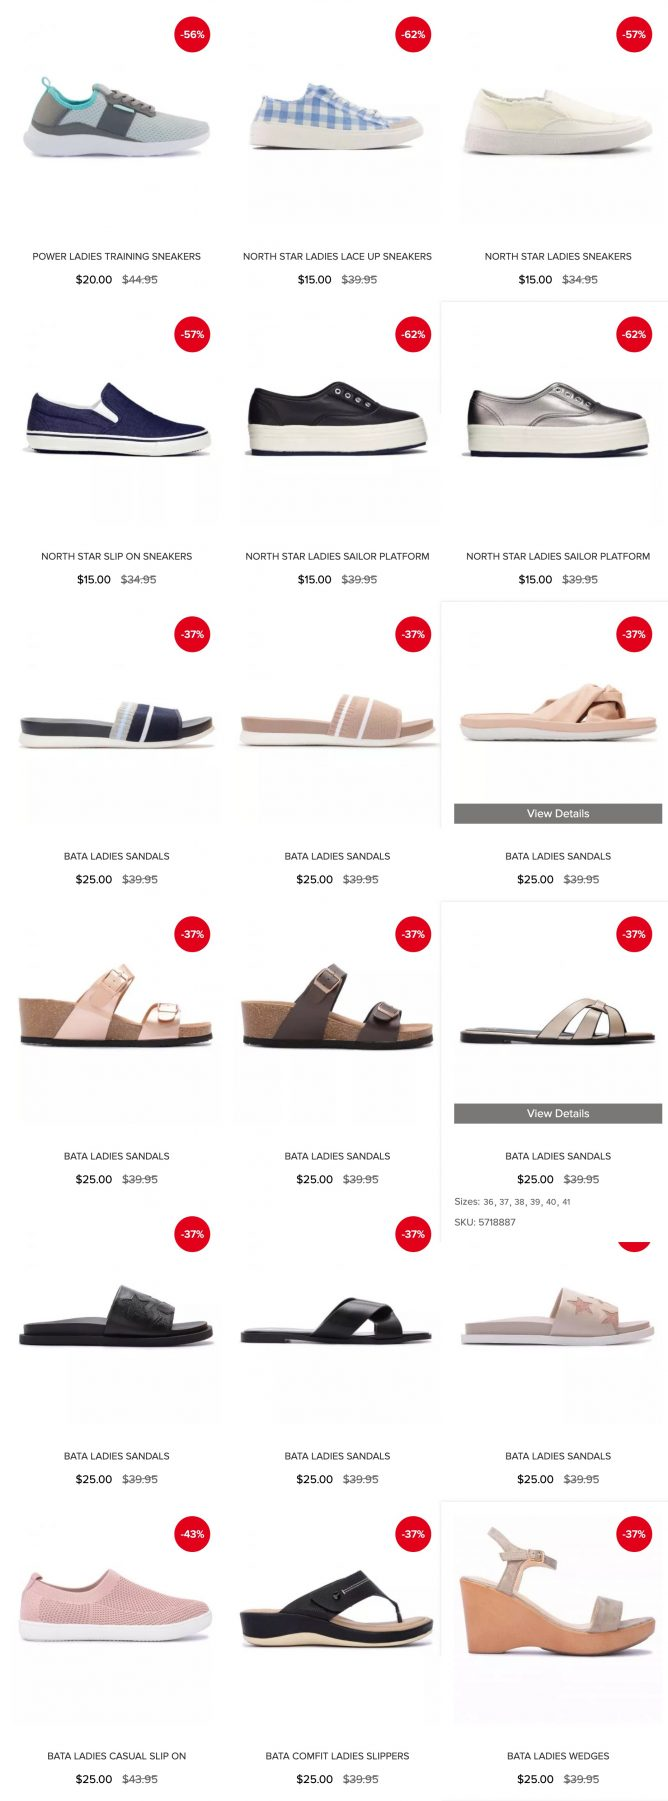 Bata: Great Singapore Sale with Up to